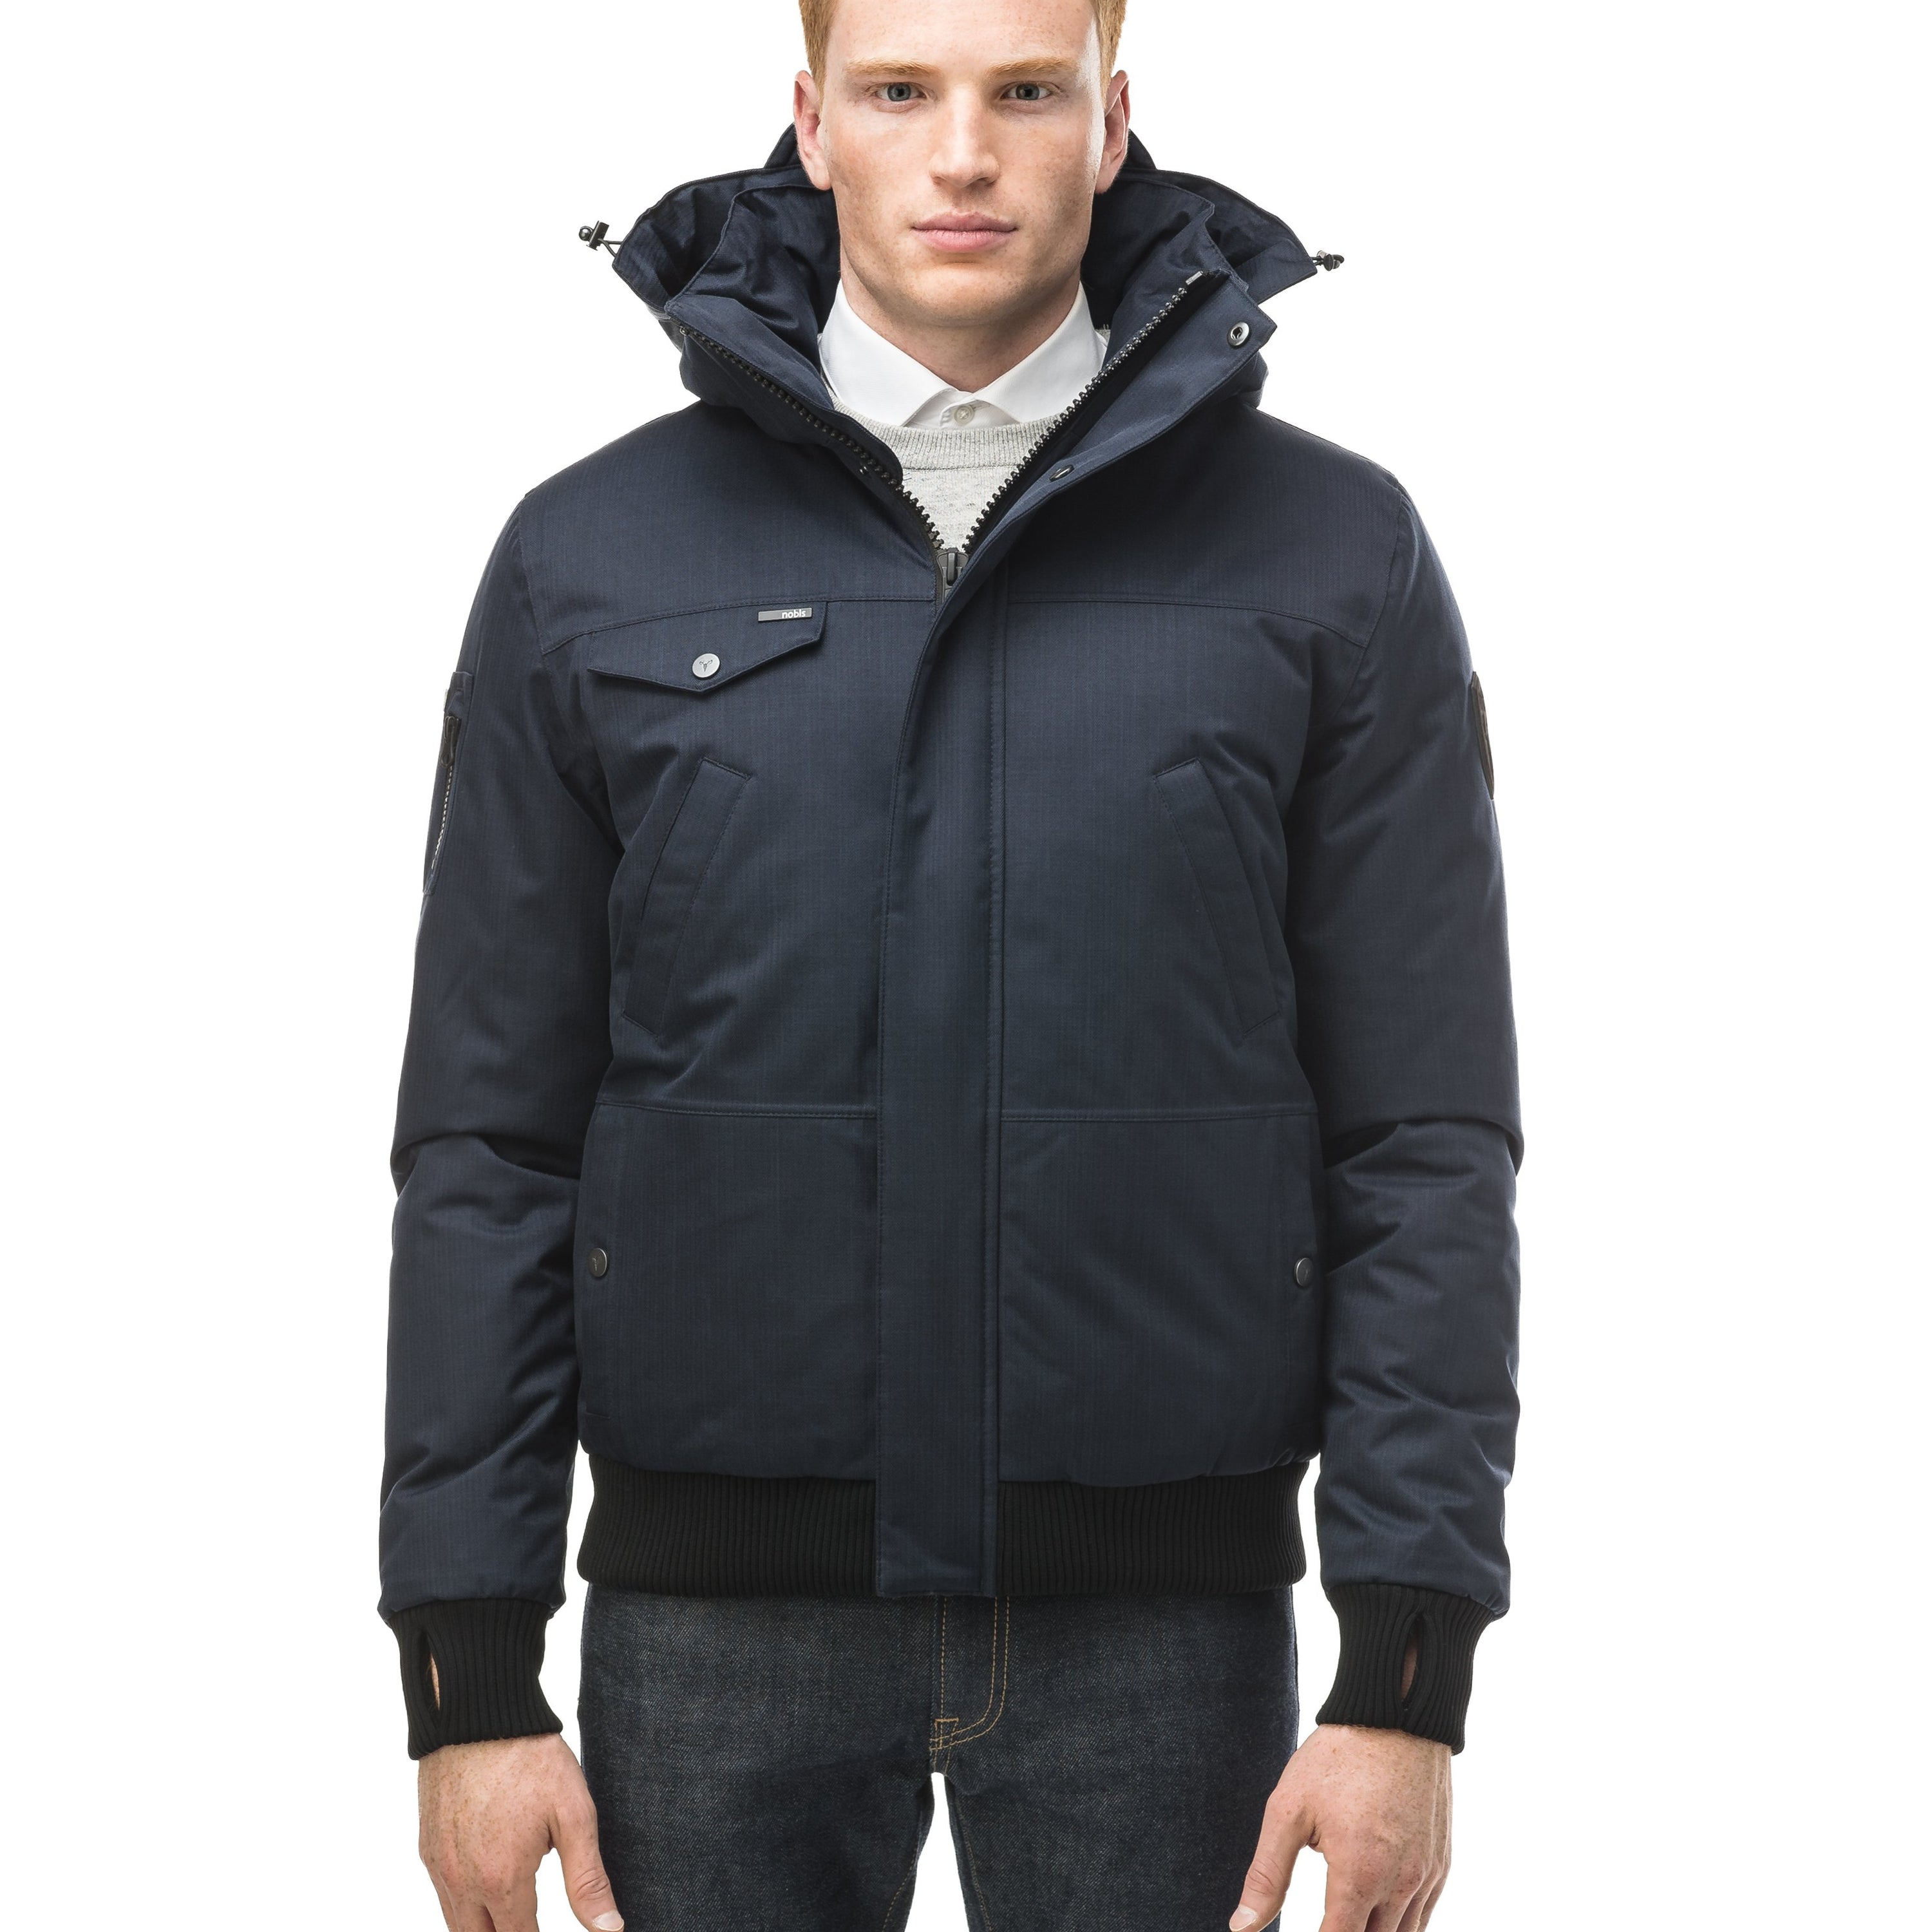 Nobis Stanford Men's Bomber Jacket